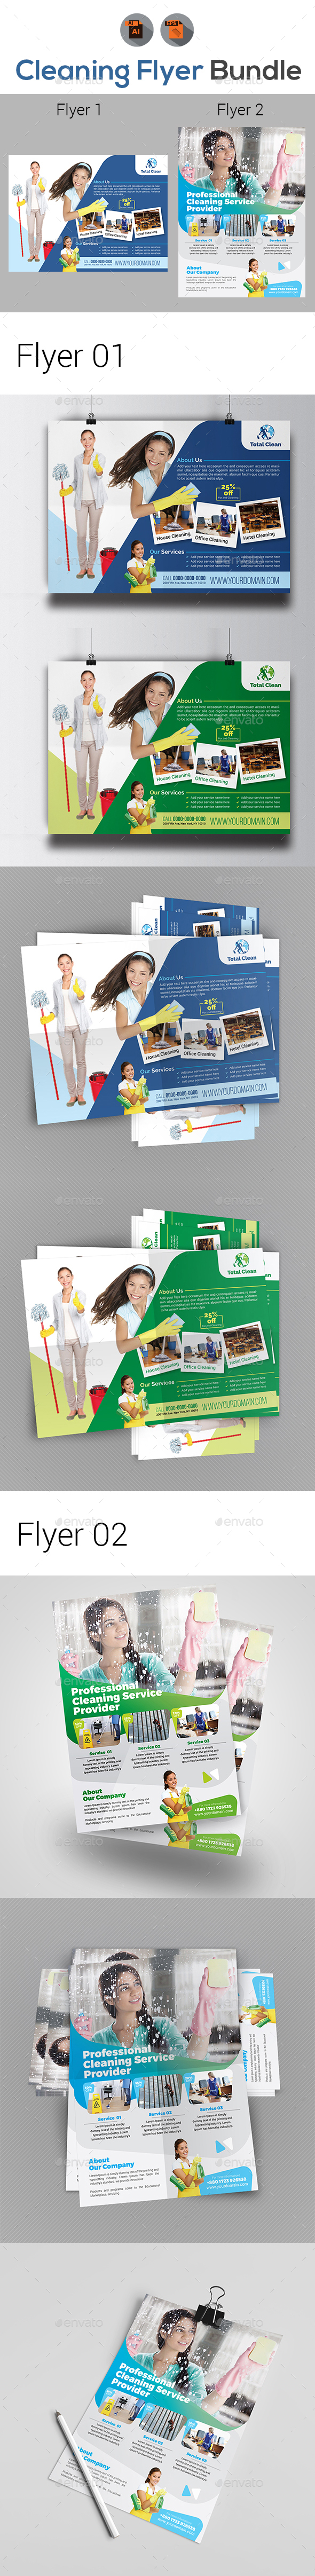 Cleaning Services Flyer Templates - Corporate Flyers